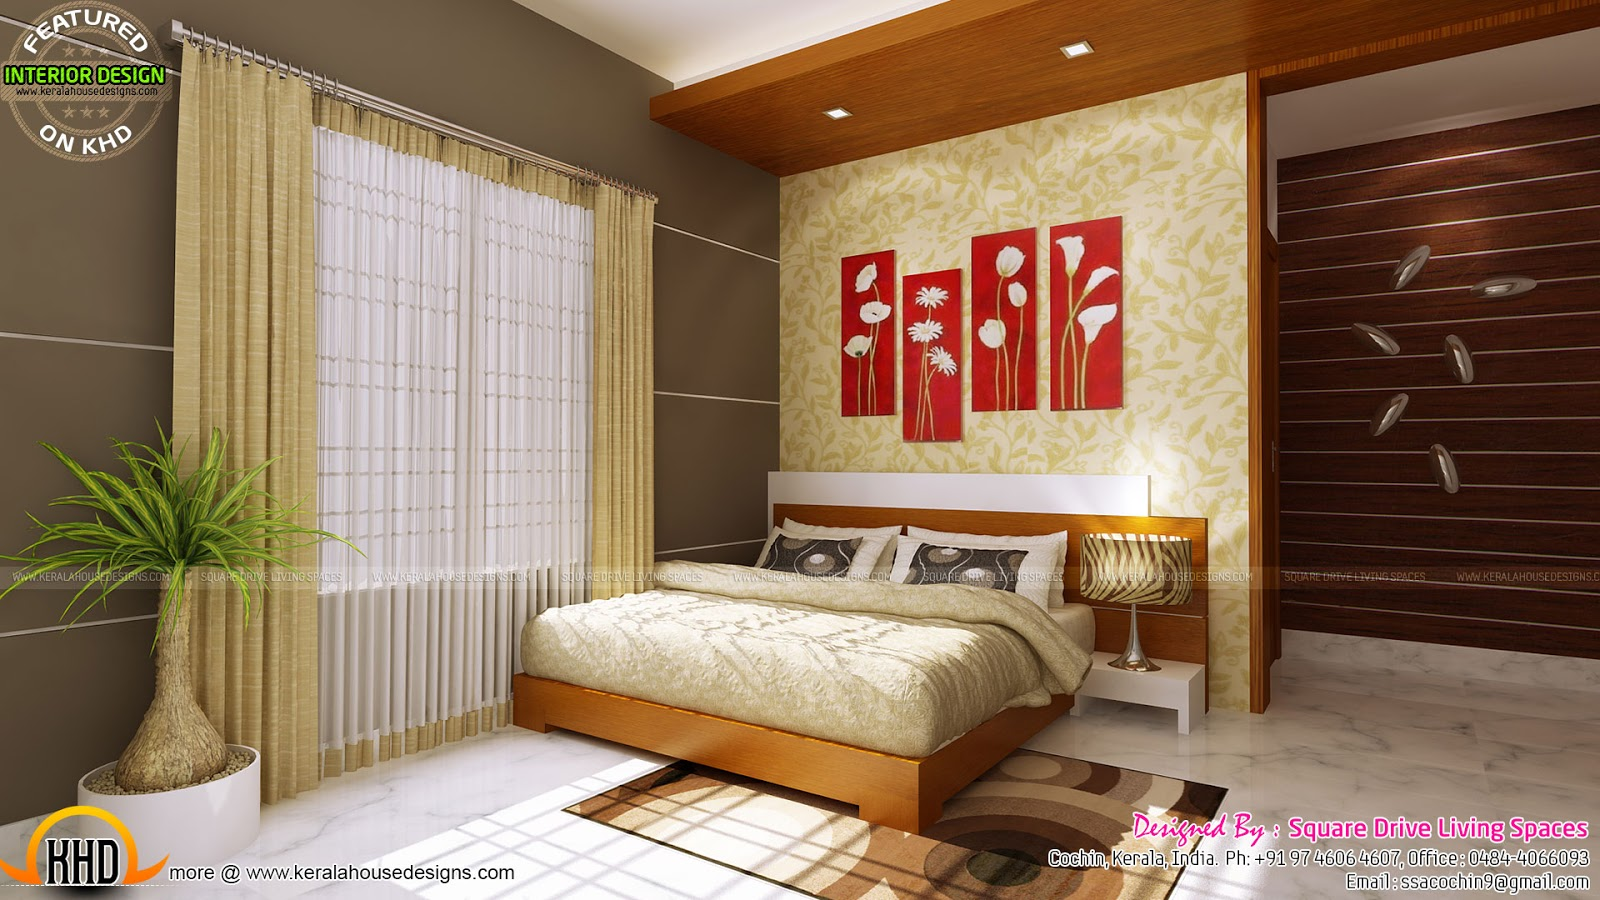 Excellent kerala interior design kerala home design and Low cost interior design for homes in kerala